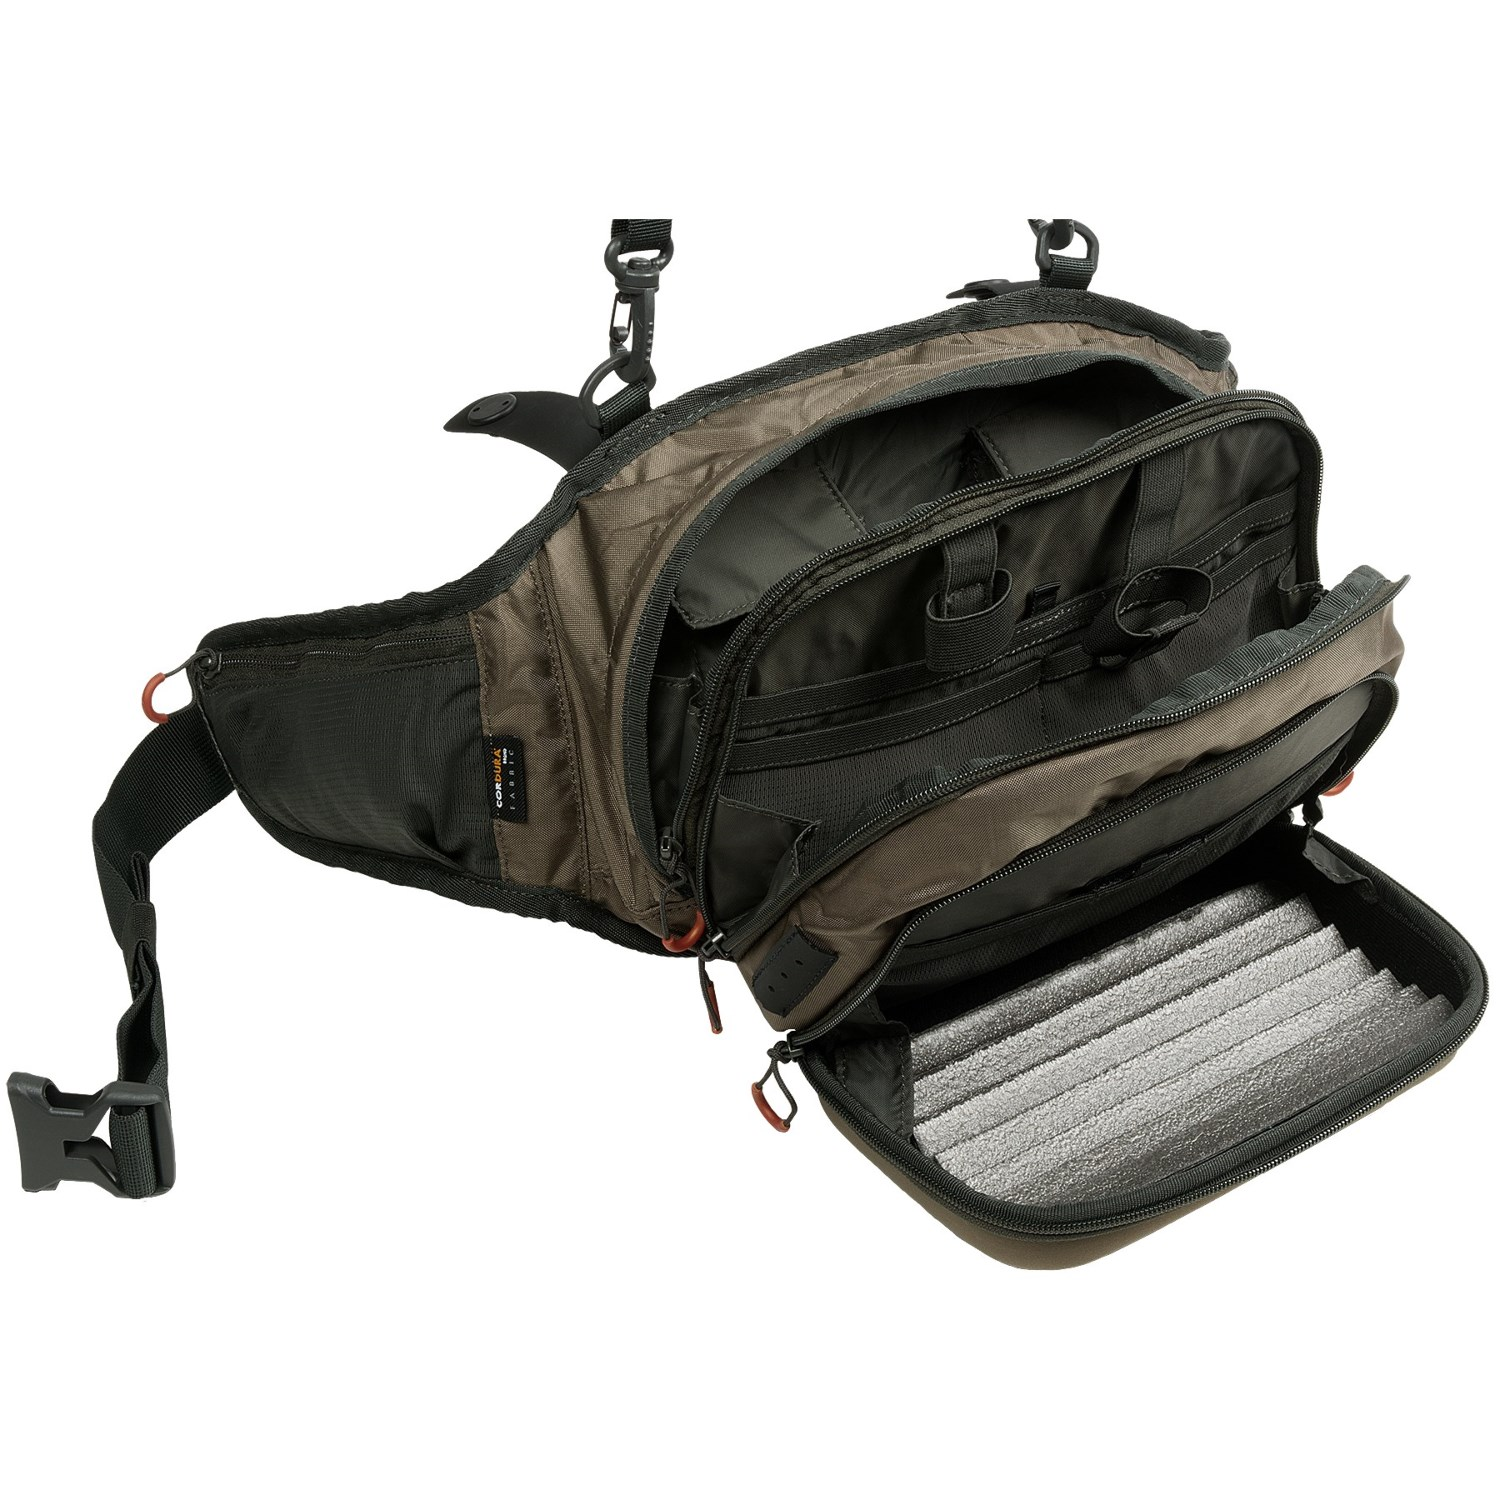 Simms headwaters fishing chest hip pack 6410x save 27 for Fishing chest pack